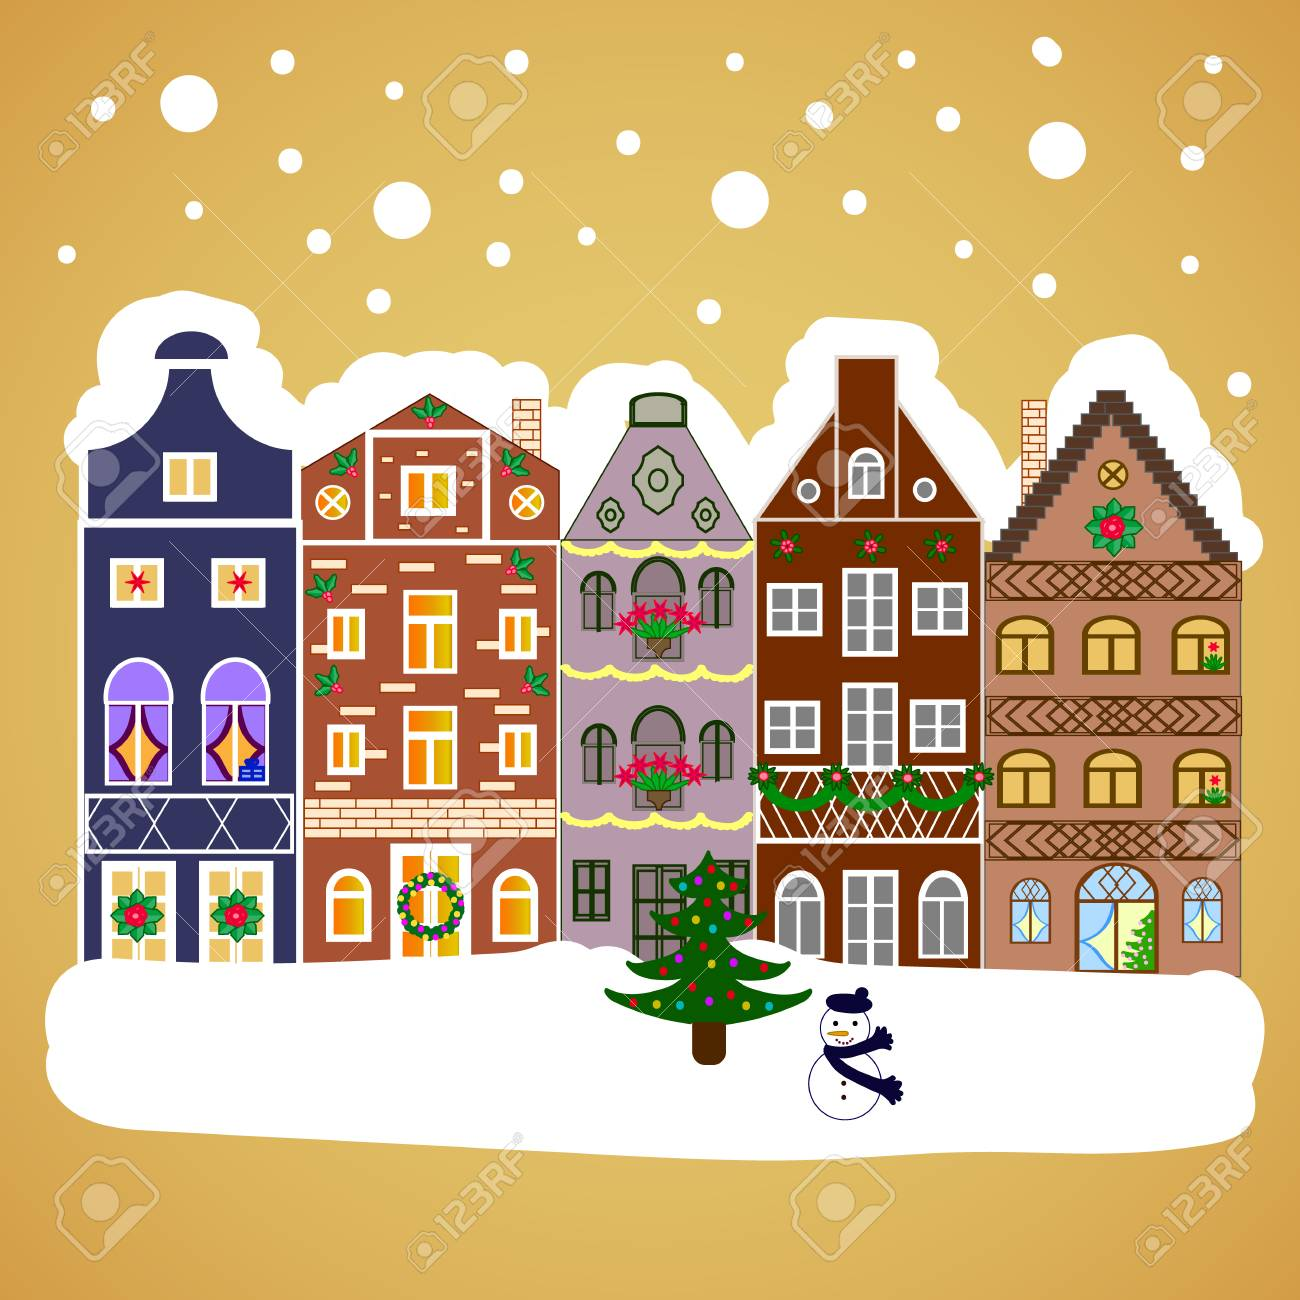 stock photo winter houses road tree new year holidays greeting card poster design winter nature landscape cute town christmas eve